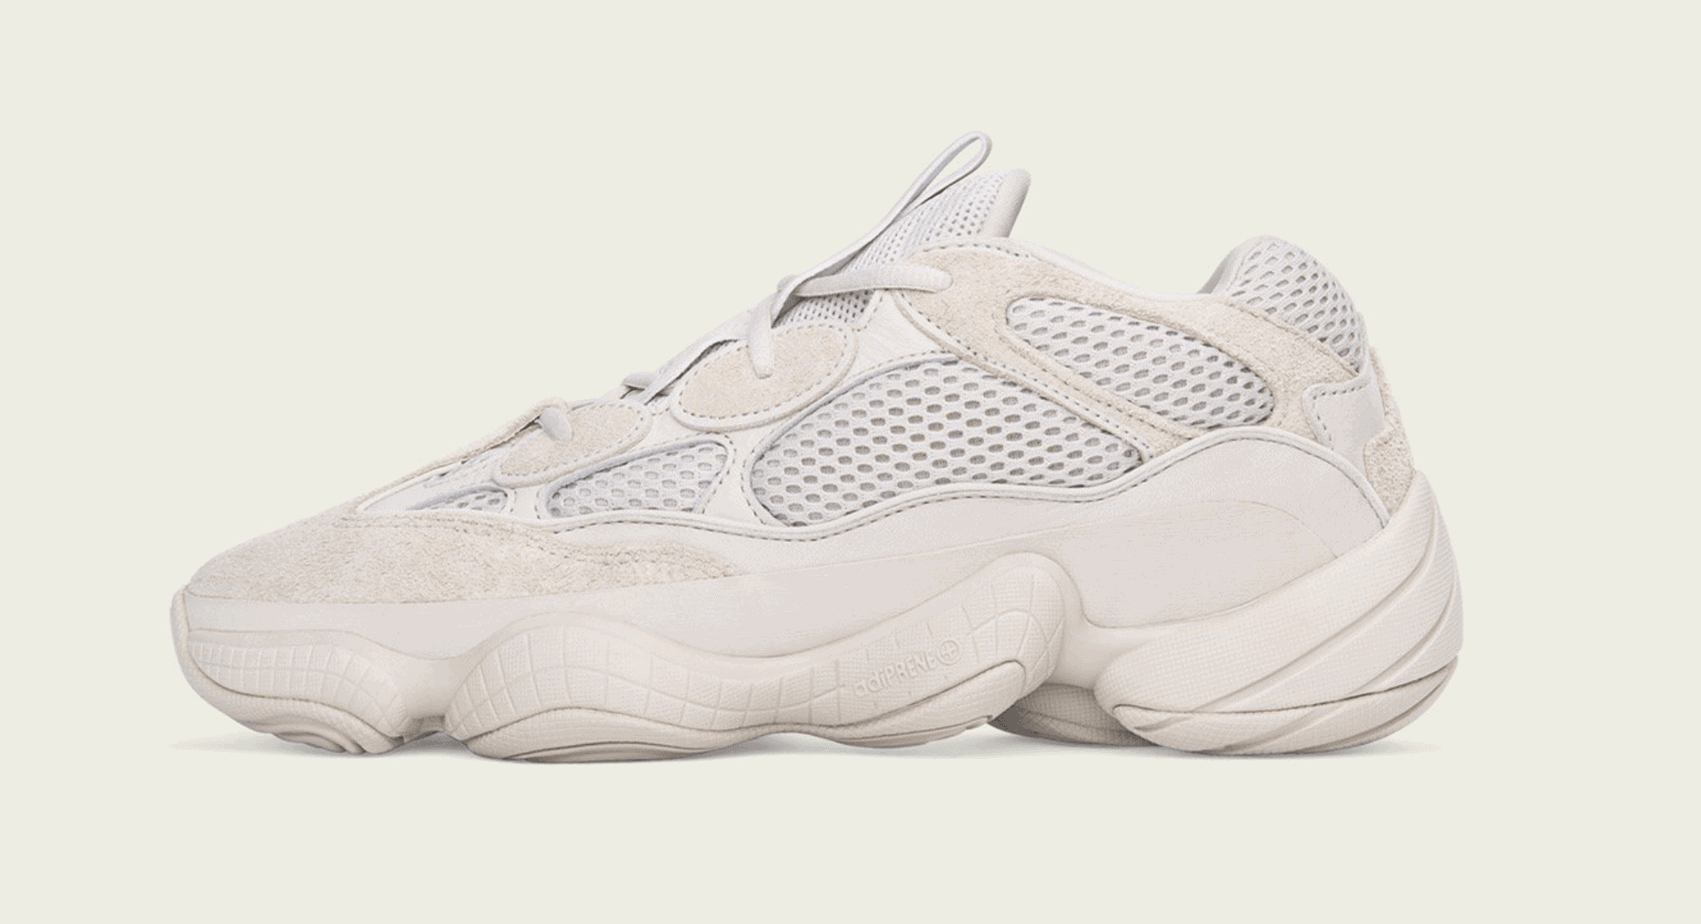 9de2dcc13d943 The adidas Yeezy 500 will make it s retail debut during the festivities